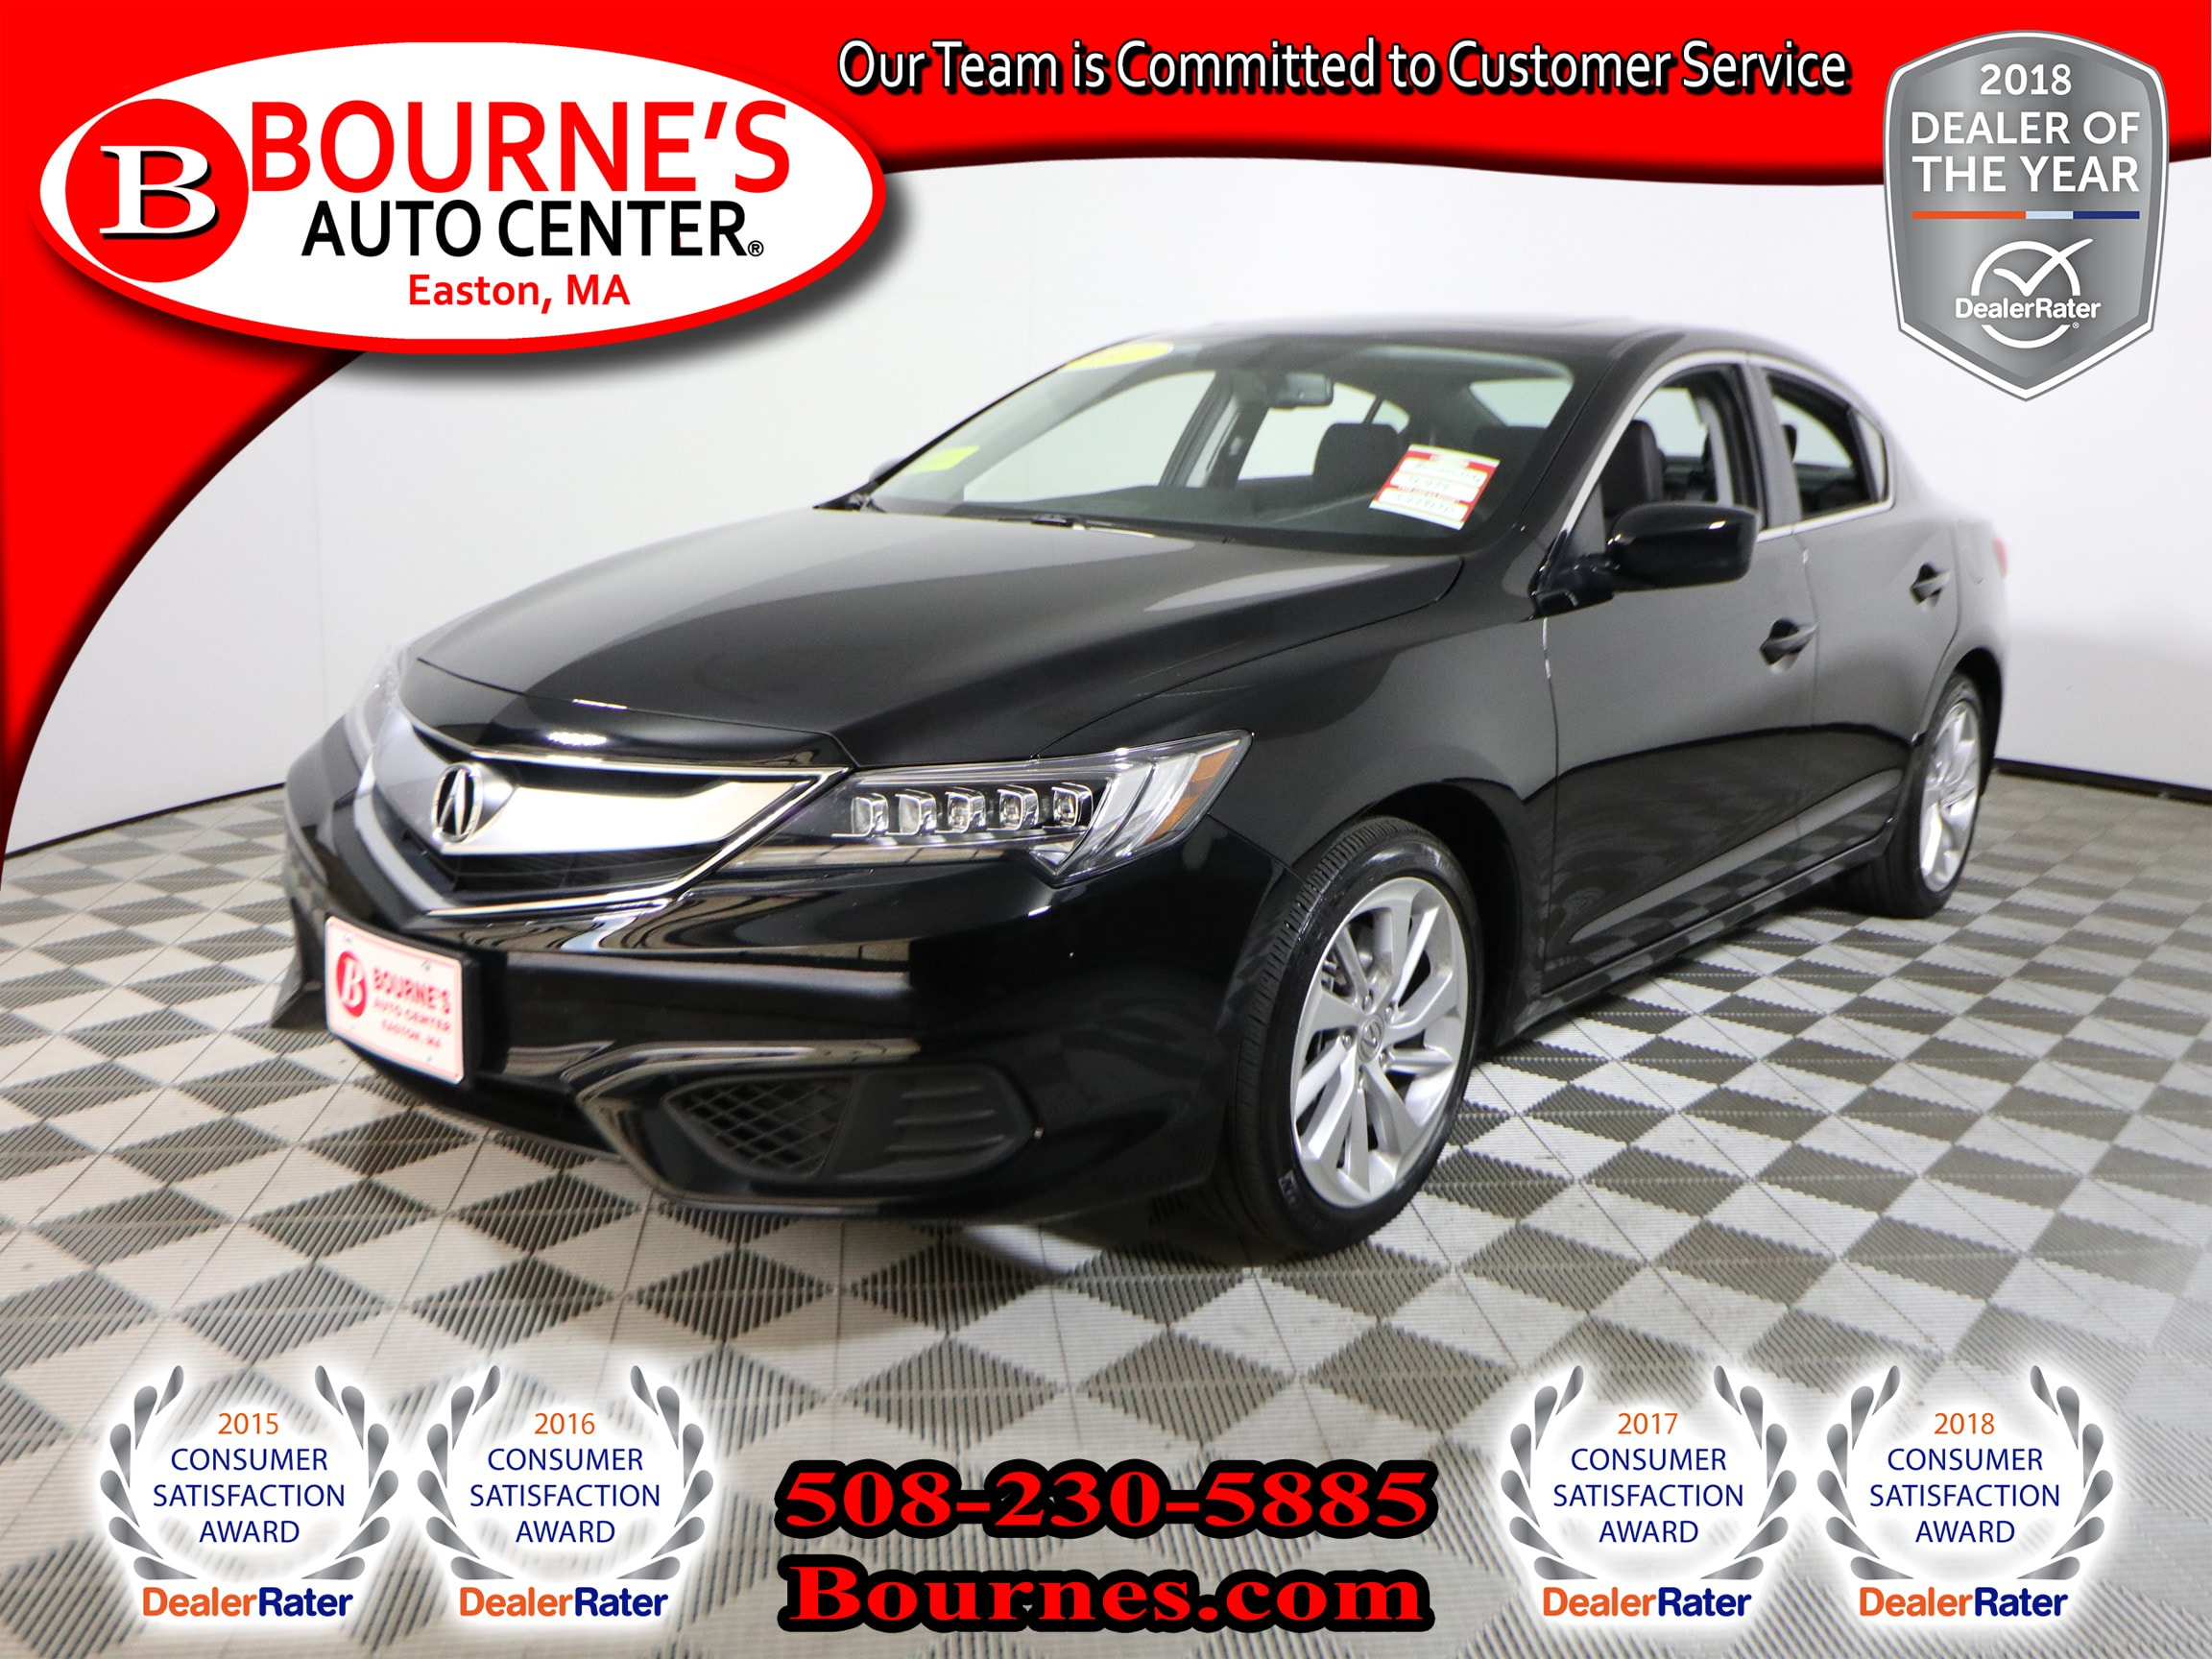 Bourne\'s Auto Center   Vehicles for sale in South Easton, MA 02375